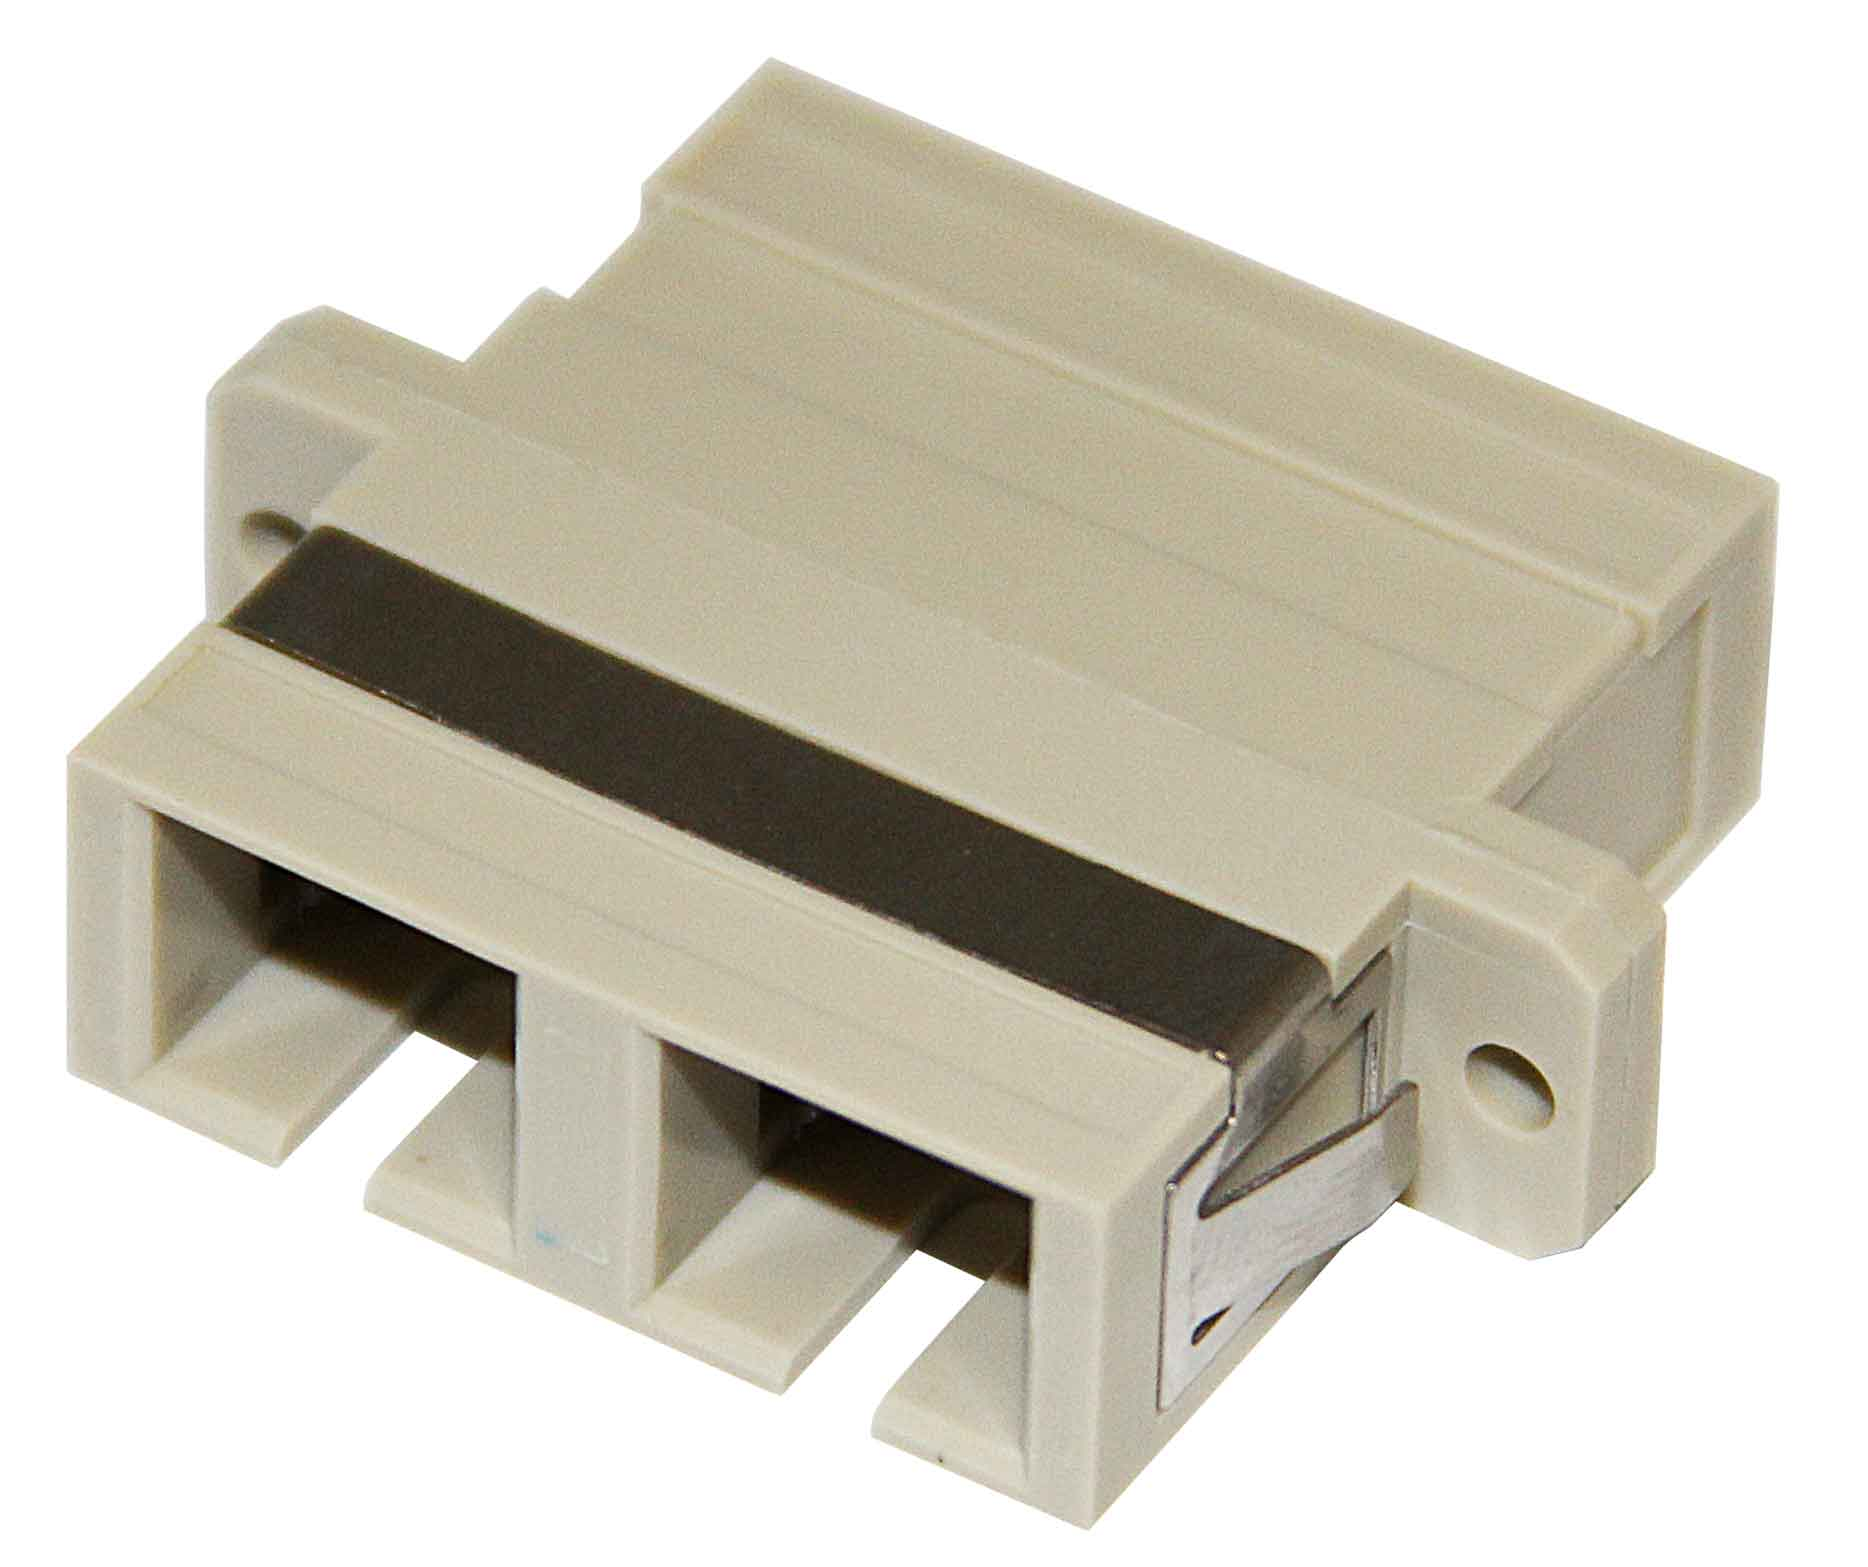 SC-SC Multimode Duplex Female to Female Adapter